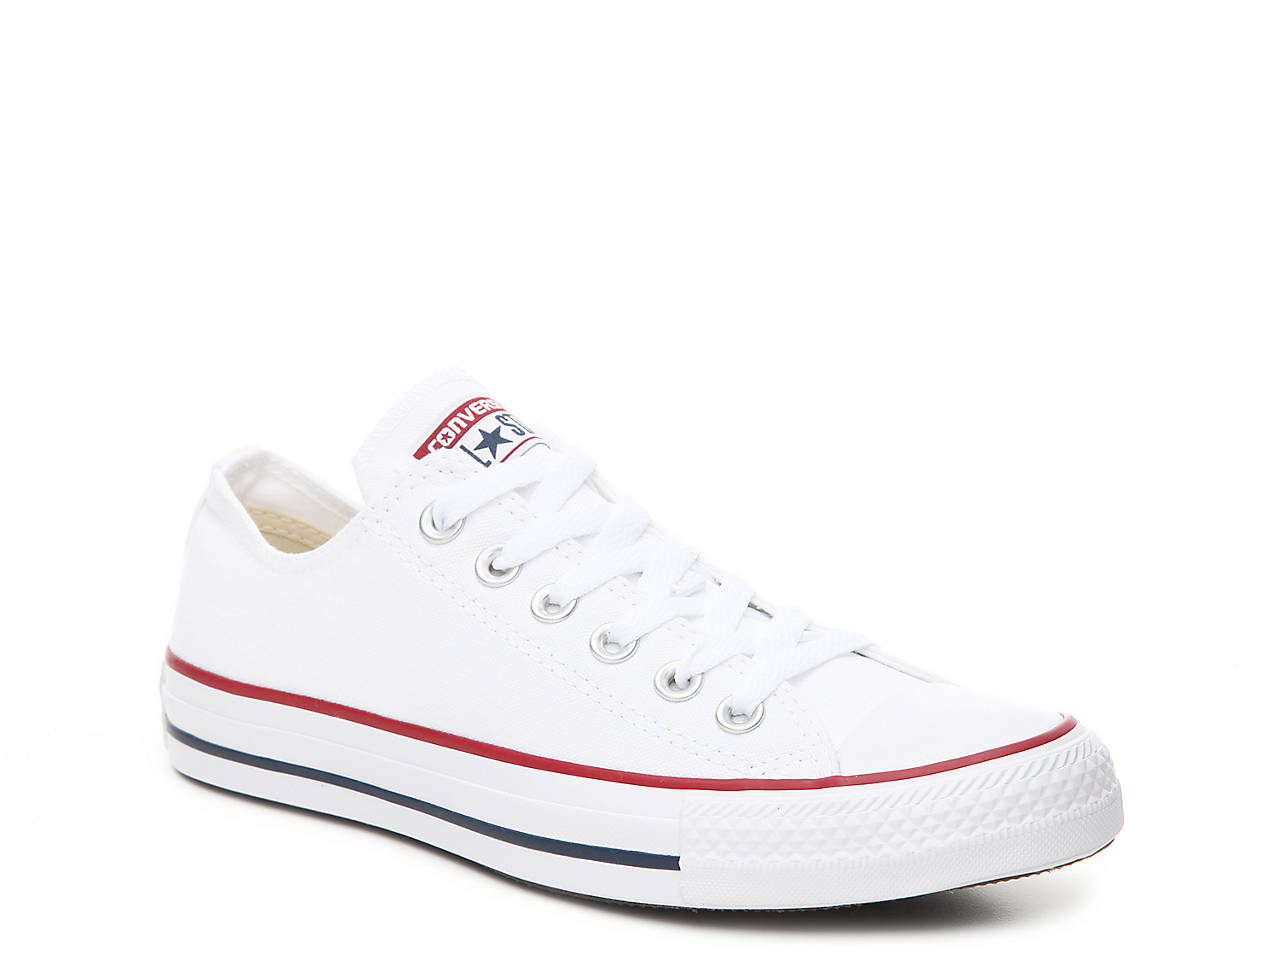 246cfc4333bb61 Converse Chuck Taylor All Star Sneaker - Women s Women s Shoes